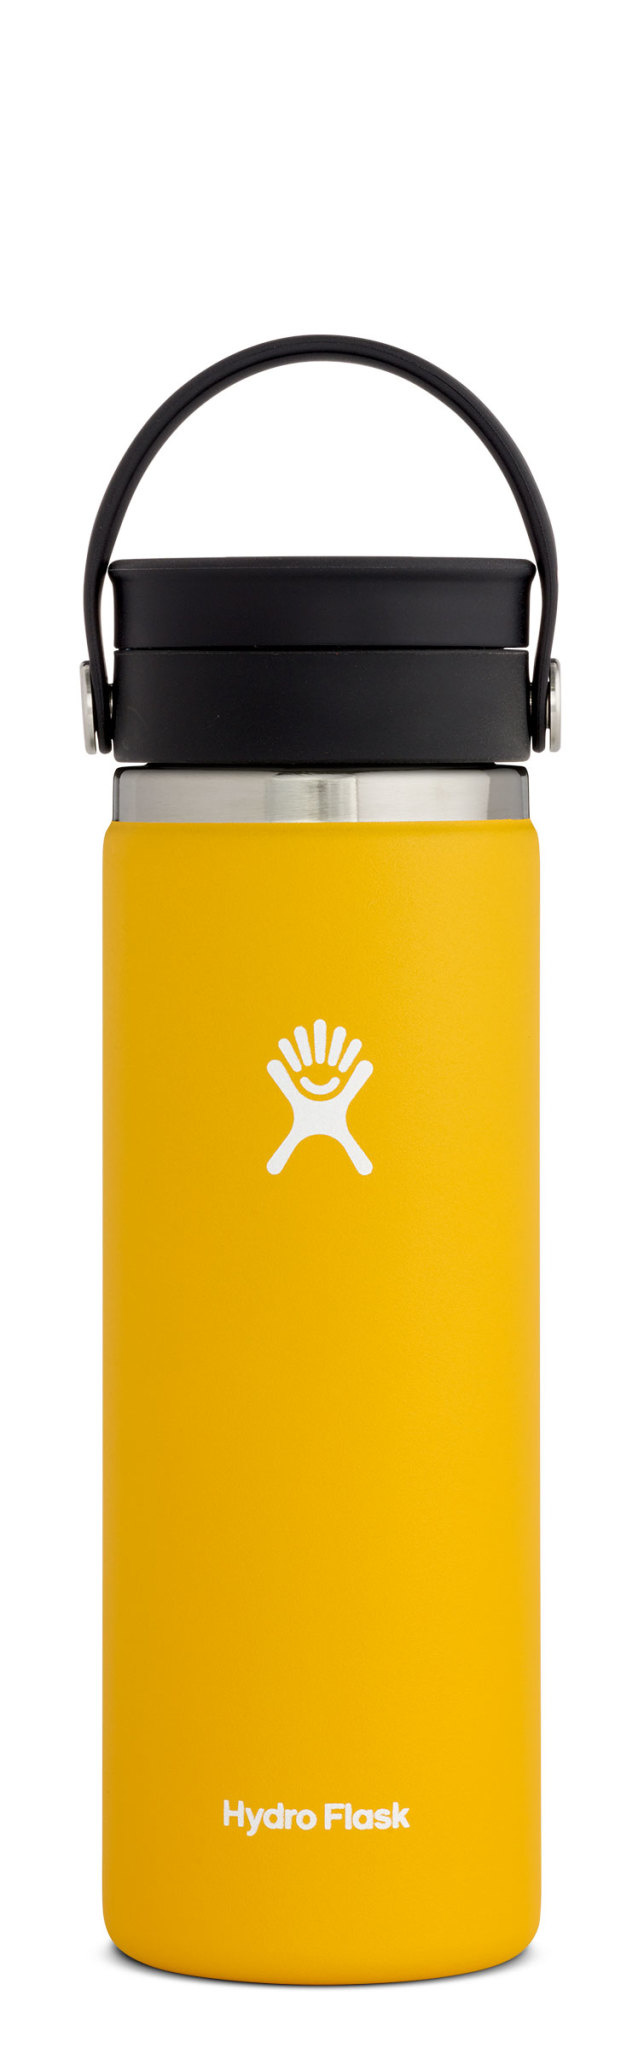 Hydro Flask 20oz Wide Mouth with Flex Sip Lid-1